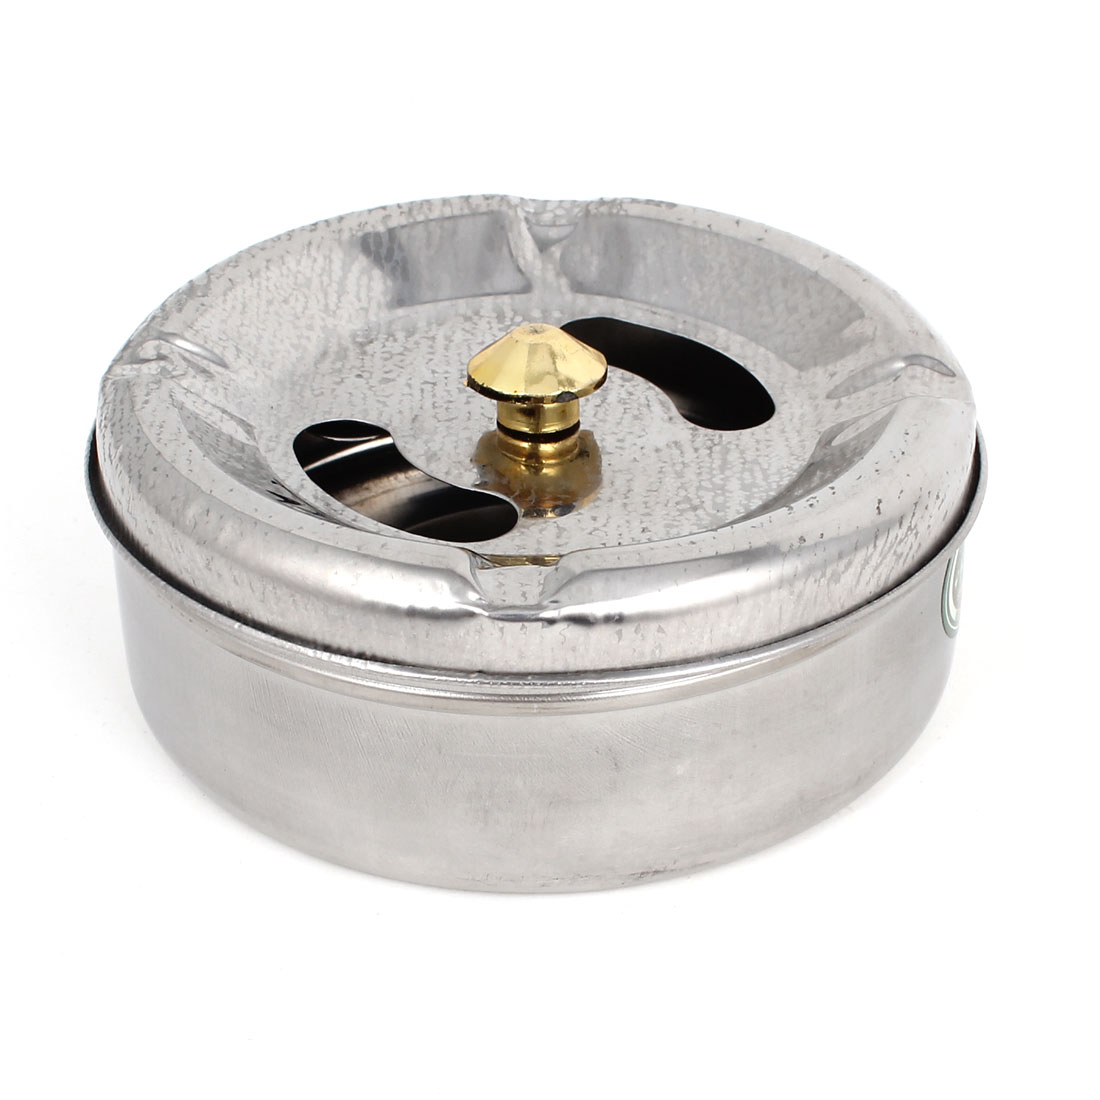 Office Home Silver Tone Metal 10cm Dia Cylinder Shape Rotating Lid Cigarette Holder Ashtray